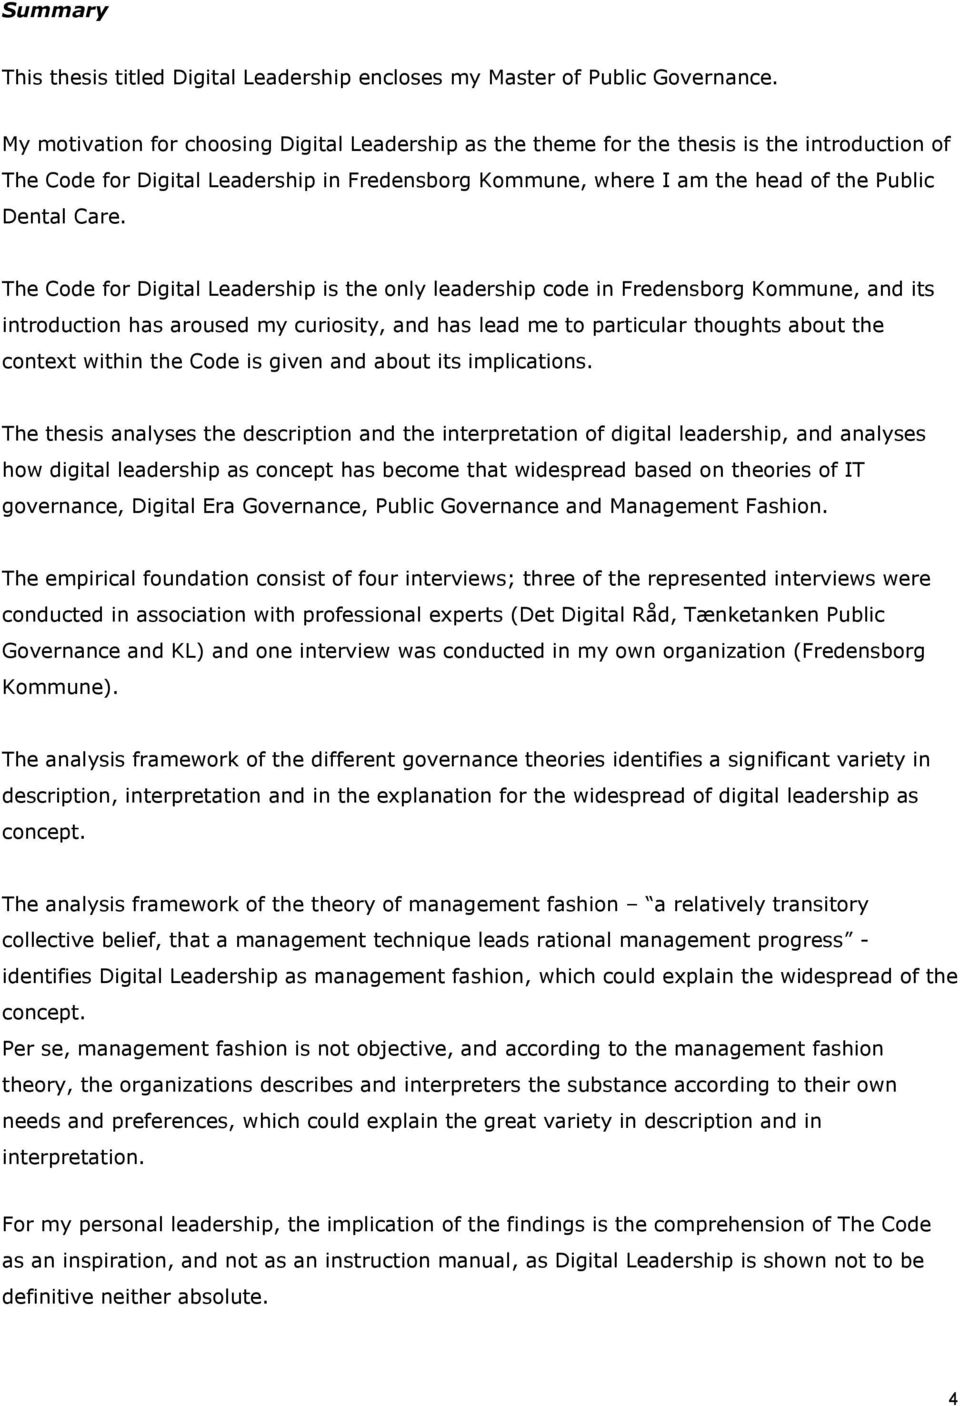 The Code for Digital Leadership is the only leadership code in Fredensborg Kommune, and its introduction has aroused my curiosity, and has lead me to particular thoughts about the context within the